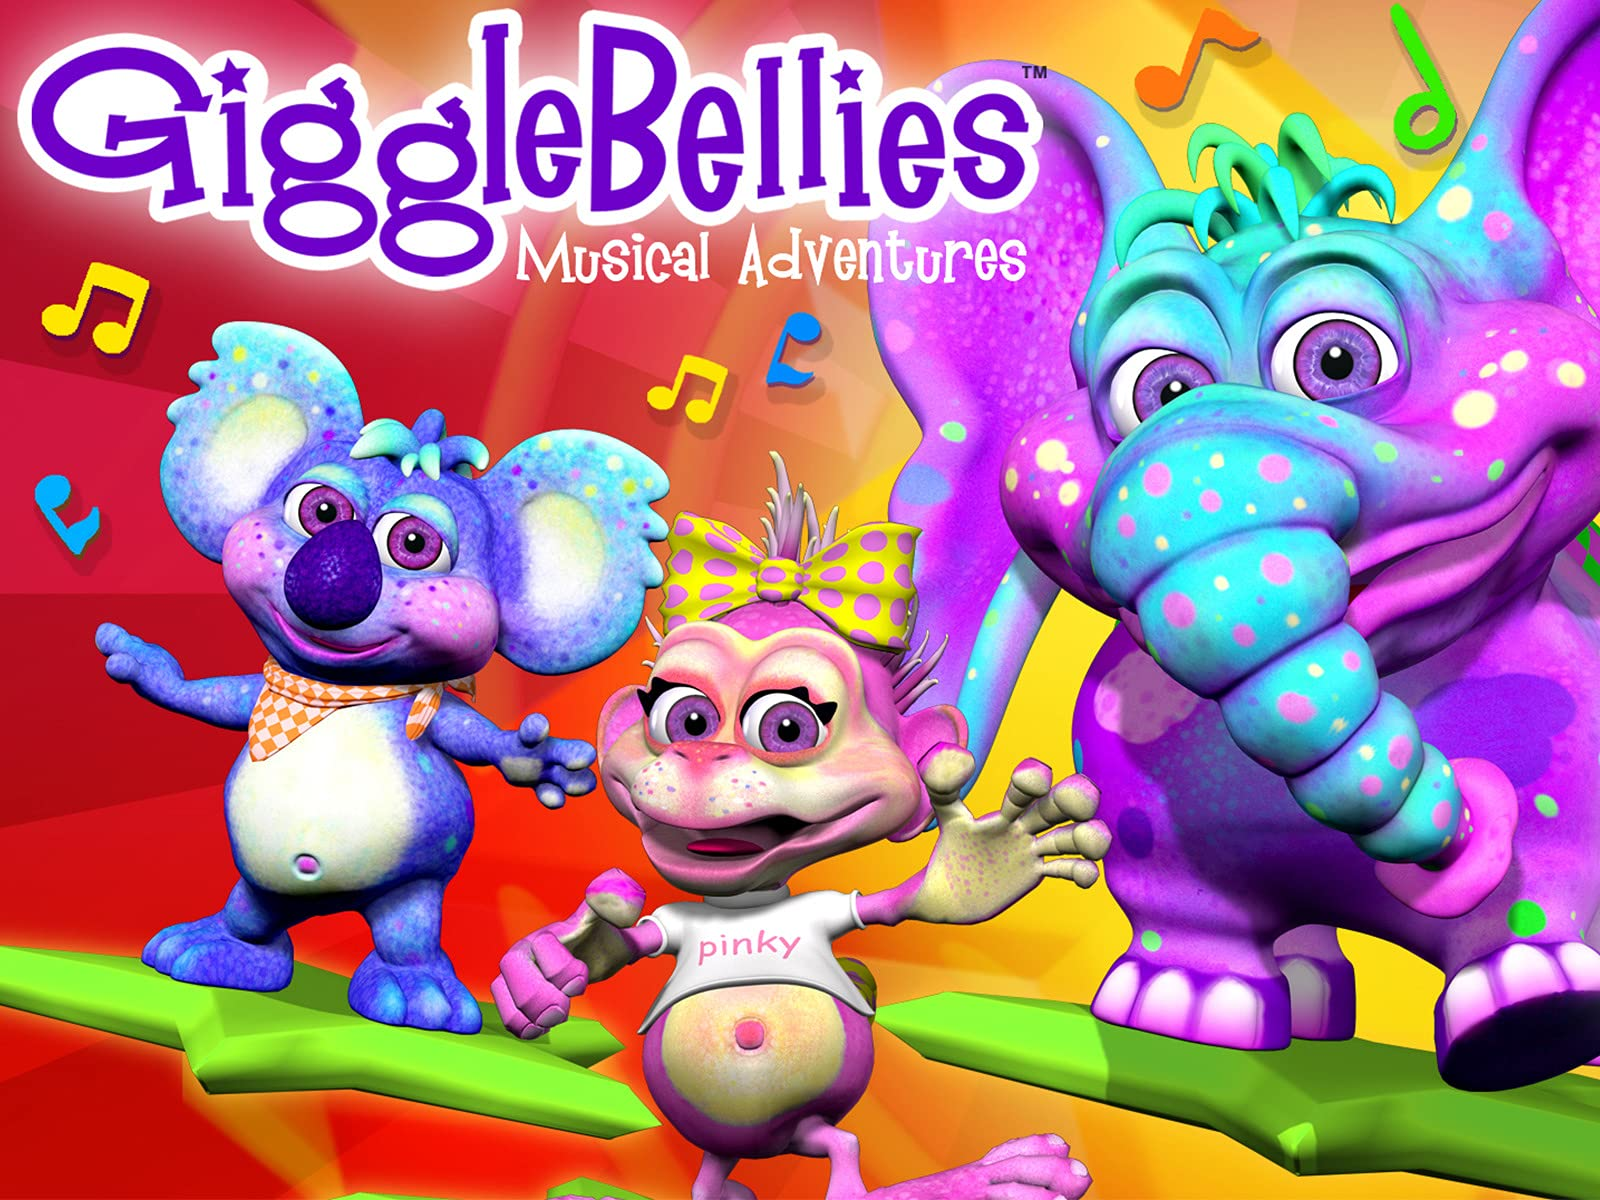 The Gigglebellies: Musical Adventures